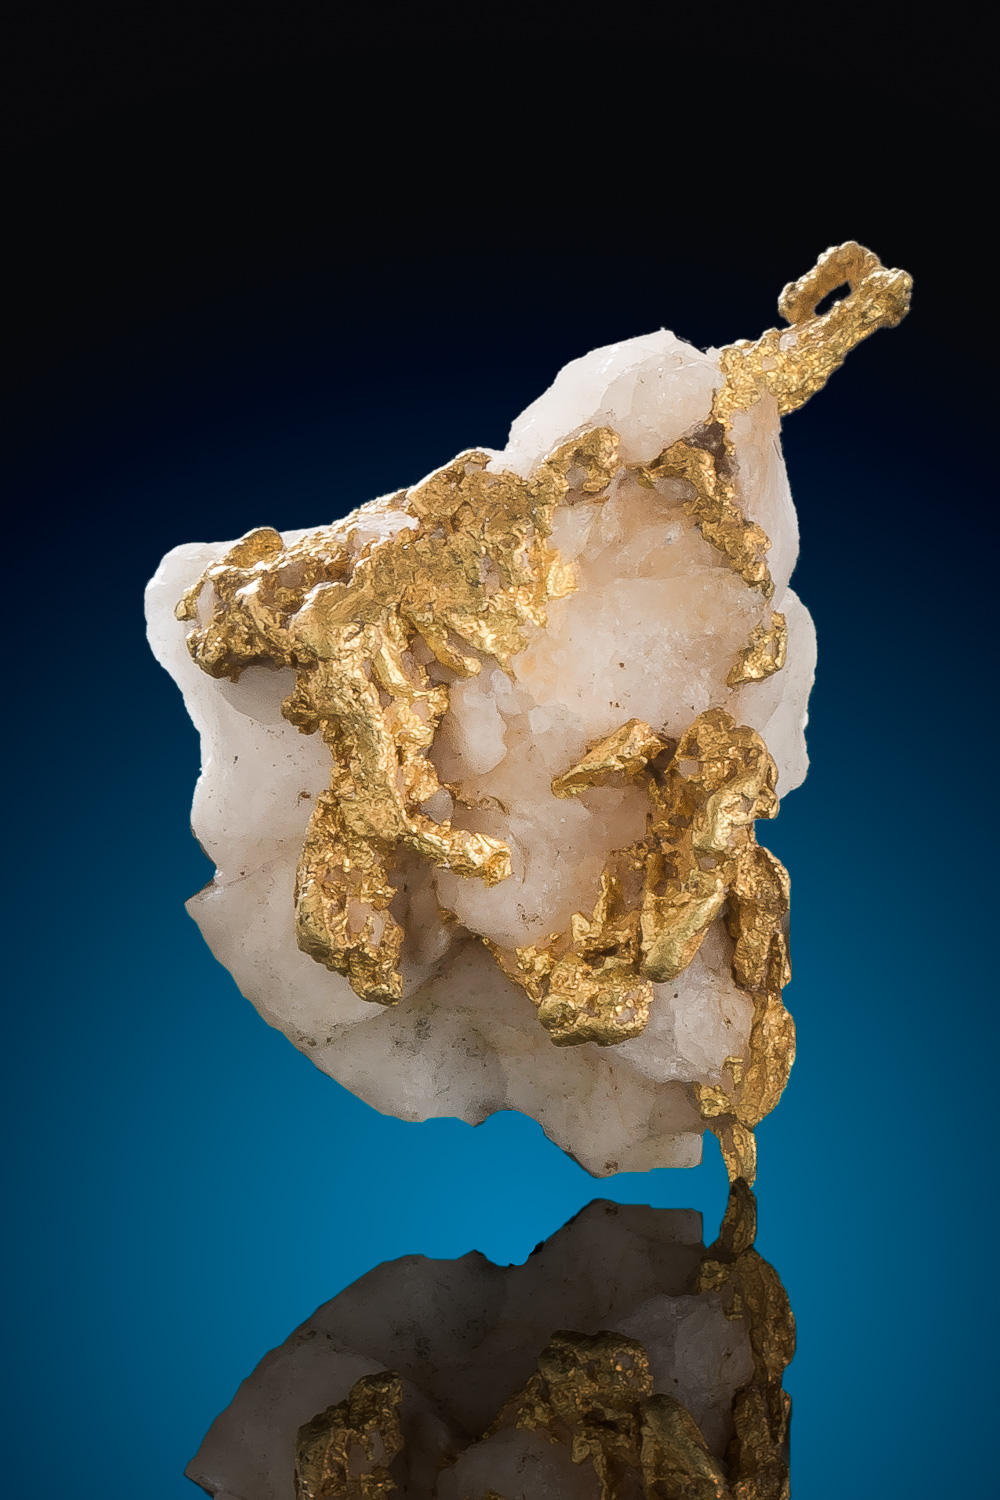 Crystalline Gold Cluster on Quartz - California